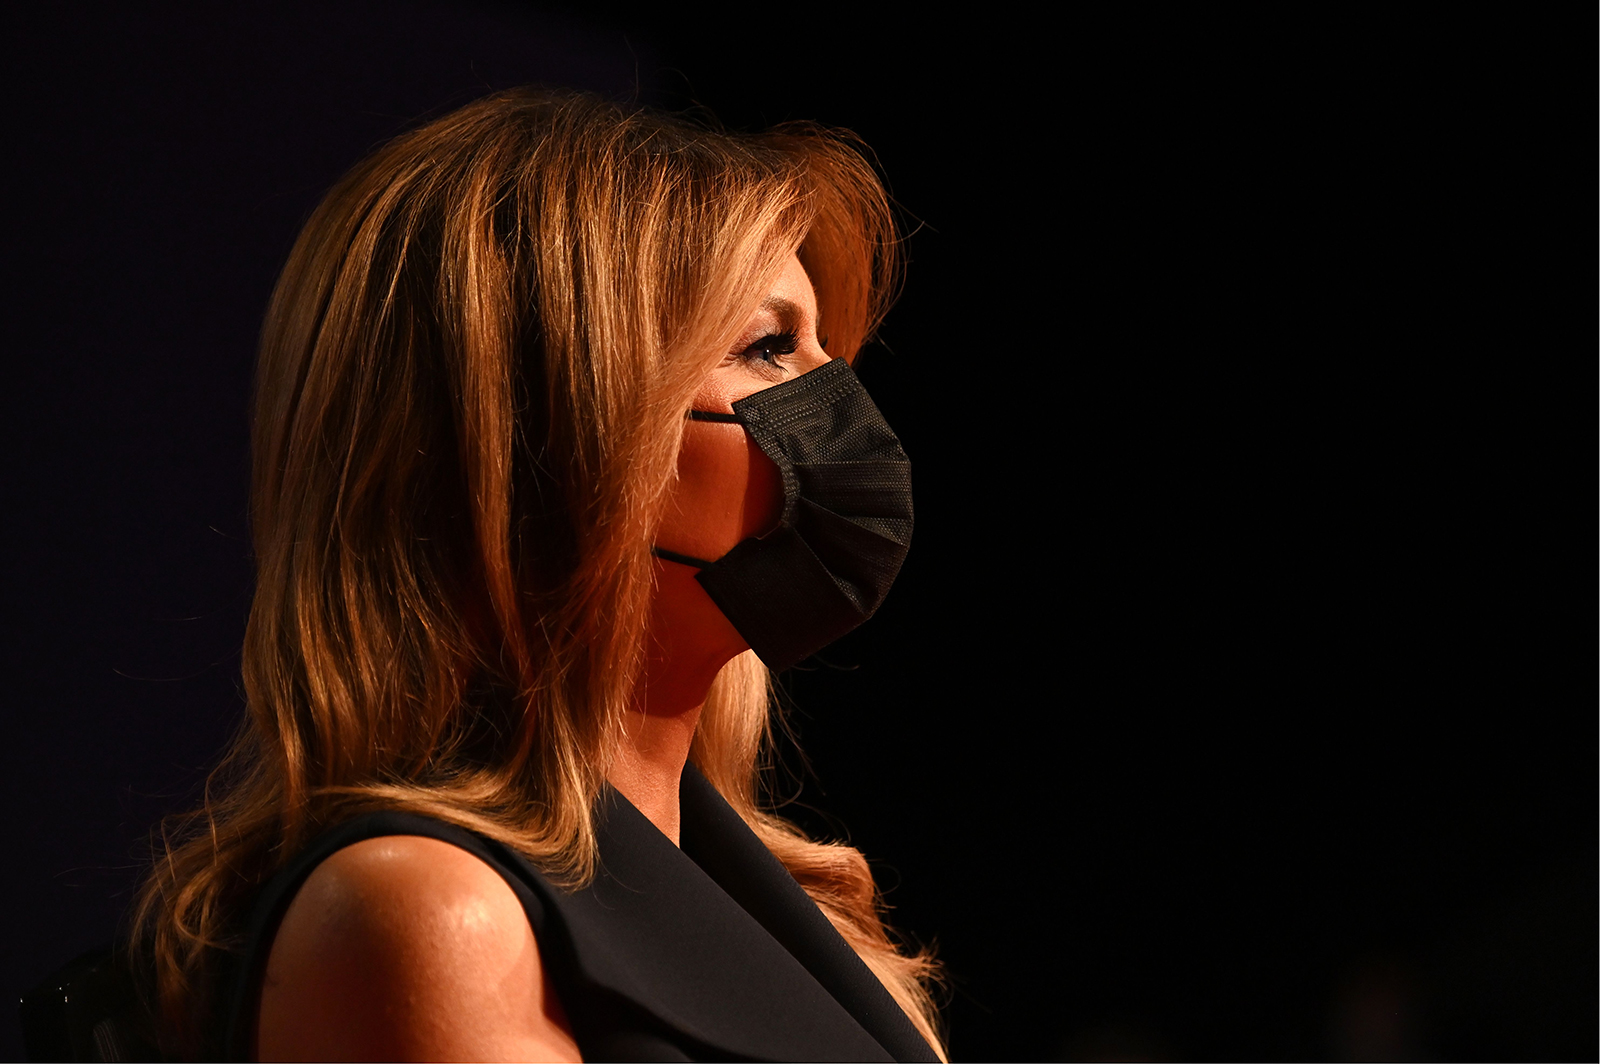 First Lady Melania Trump wears a face mask as she attends the final presidential debate at Belmont University in Nashville, Tennessee, on October 22.